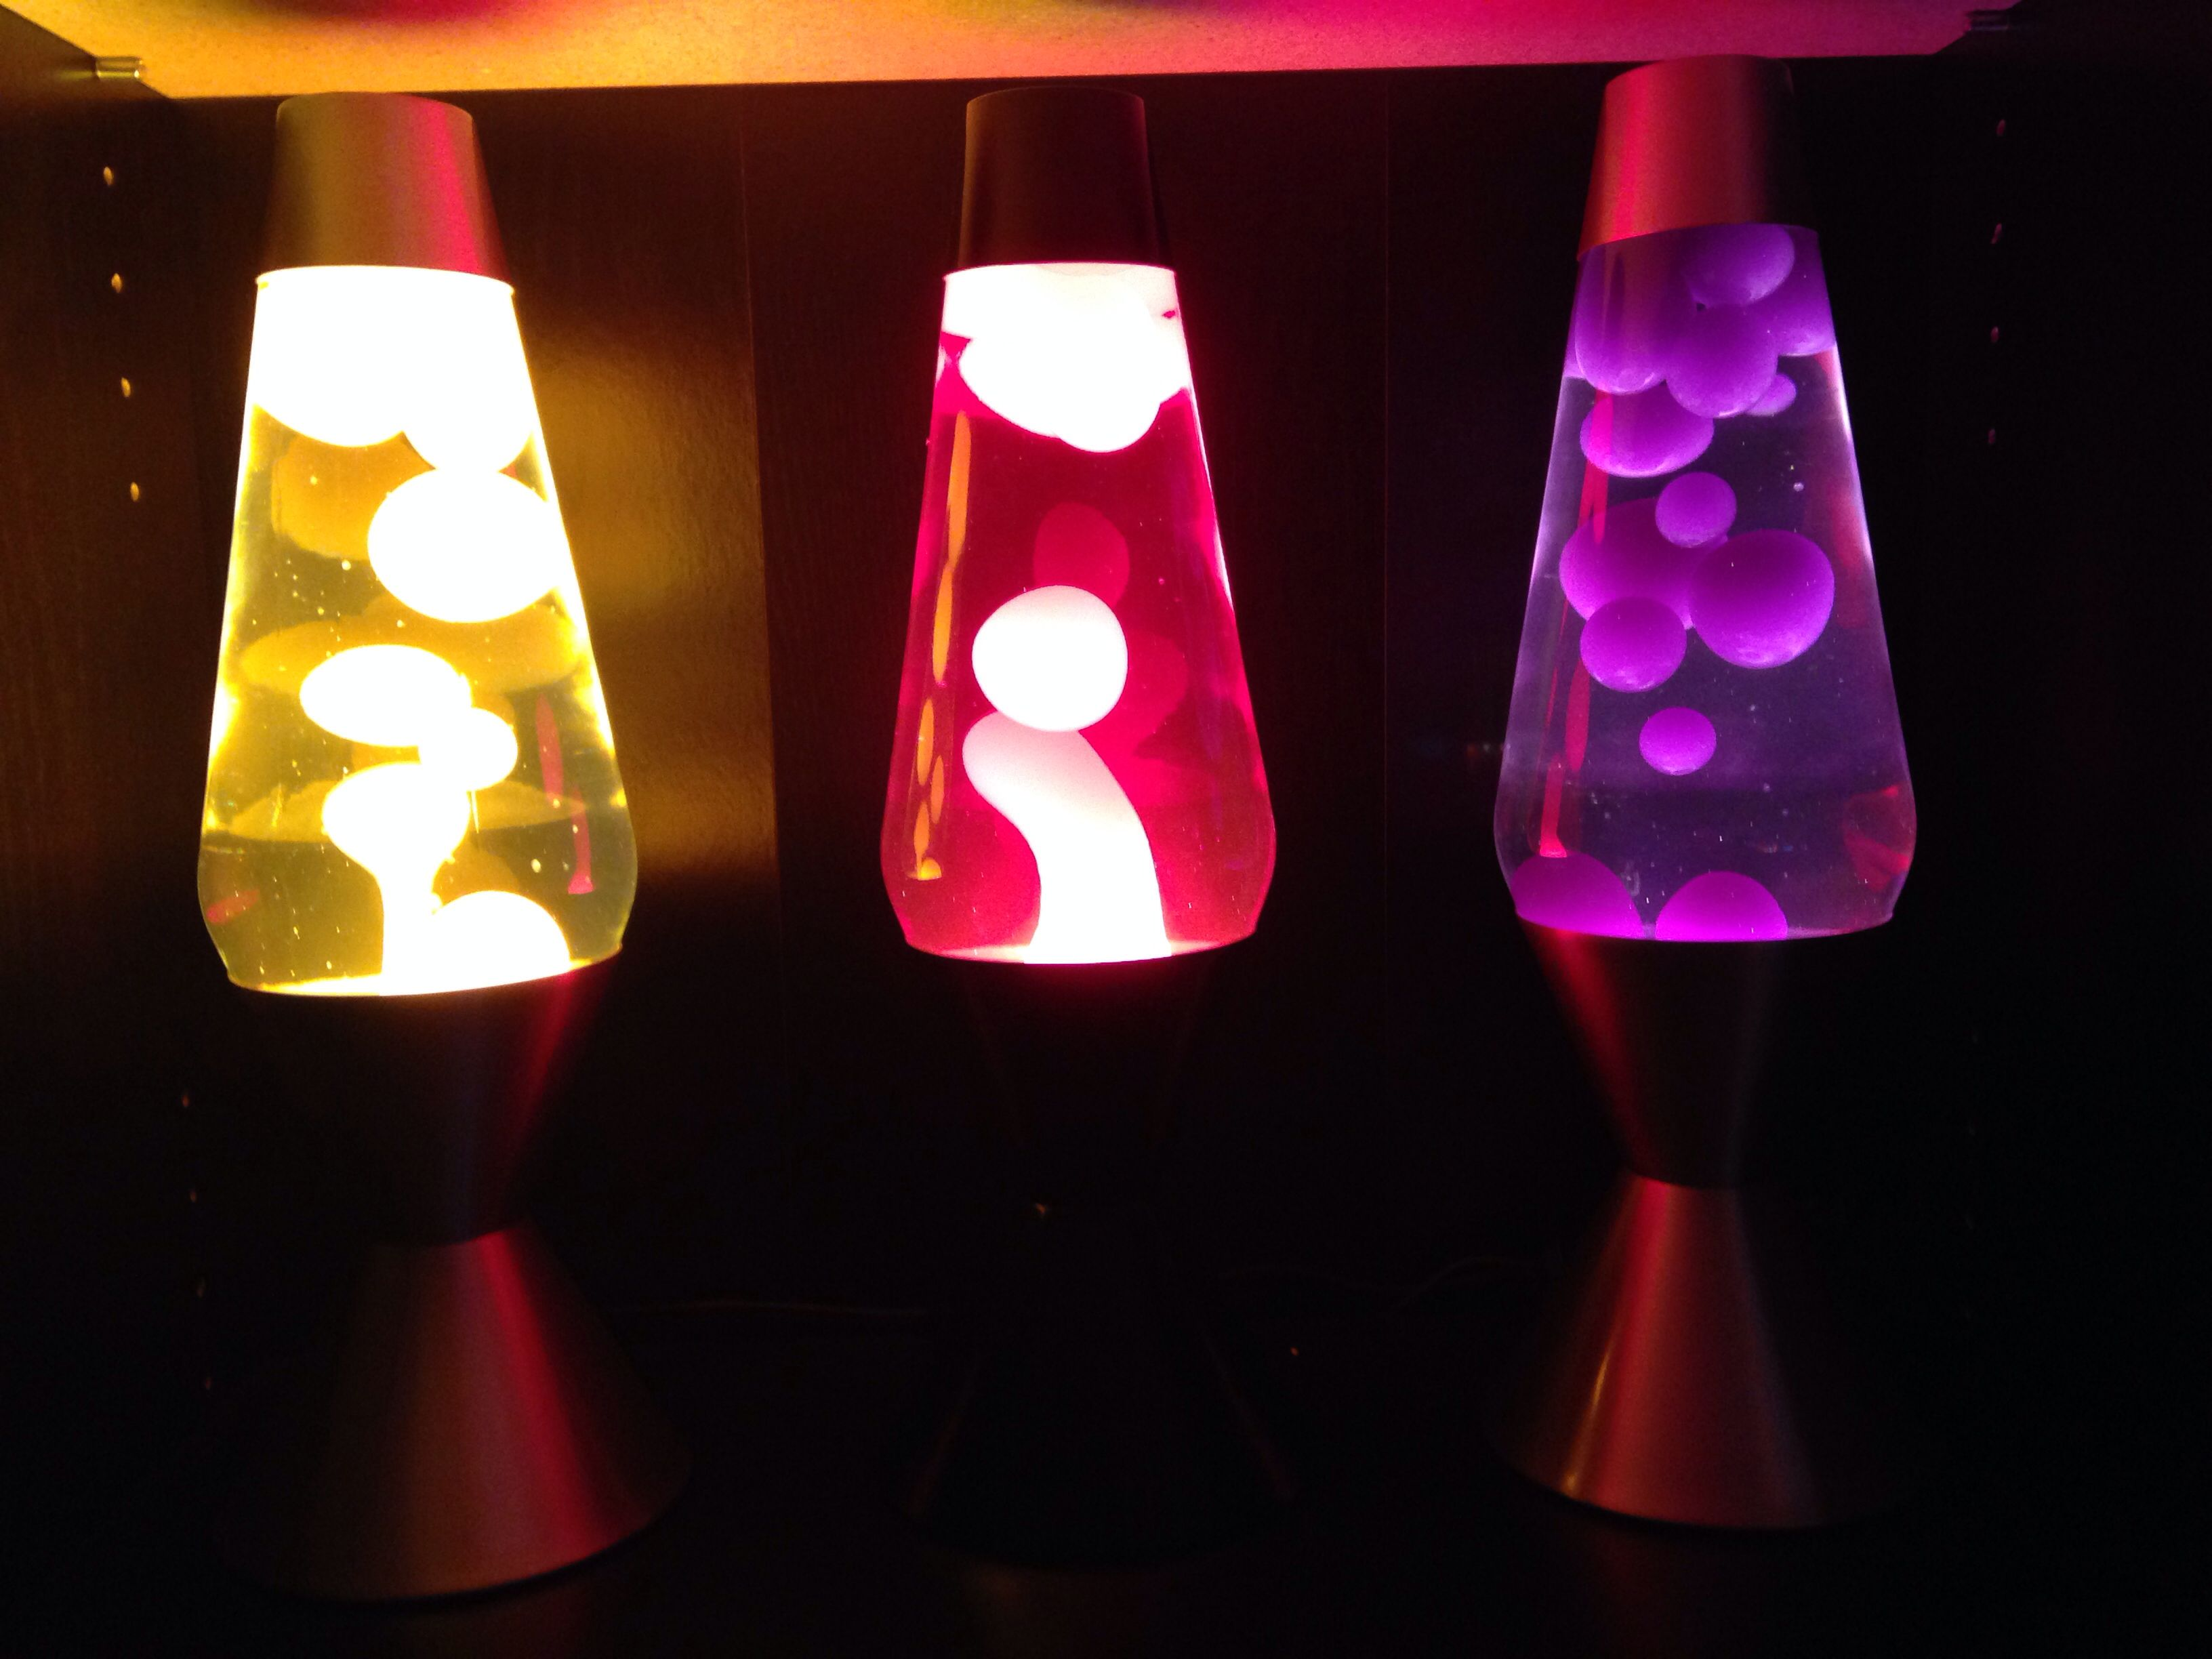 Lava lamp large - Three Sixteen Inch Lava Lamps From Left To Right Clear Liquid Yellow Wax